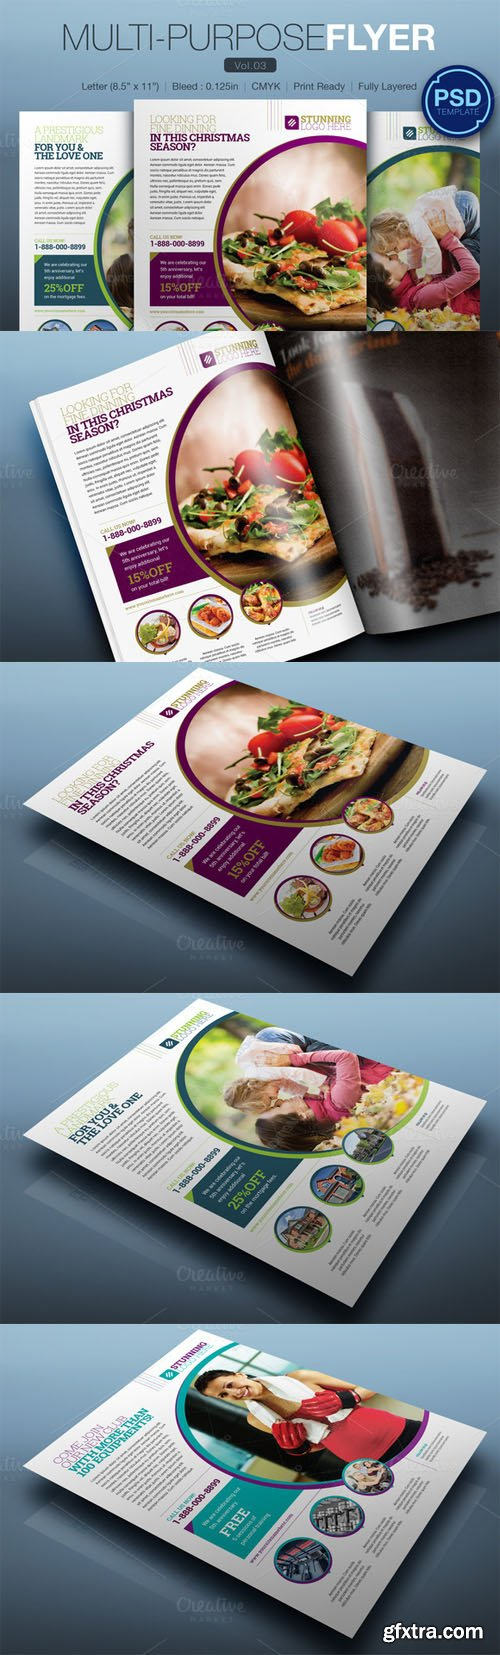 Multipurpose Flyer Vol.03 - CM 125841